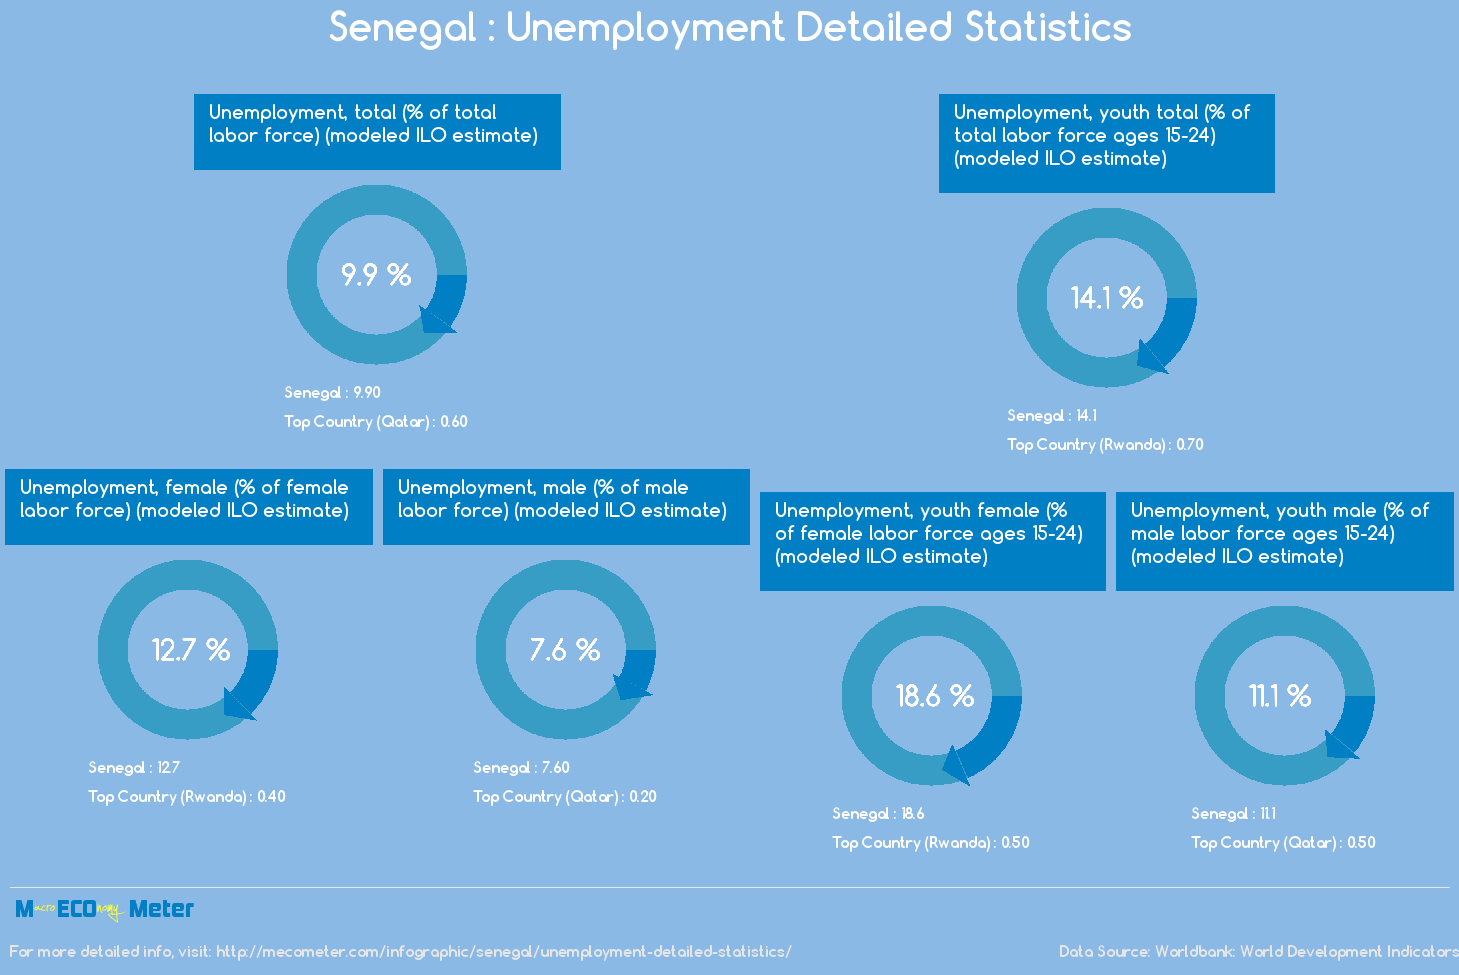 Senegal : Unemployment Detailed Statistics